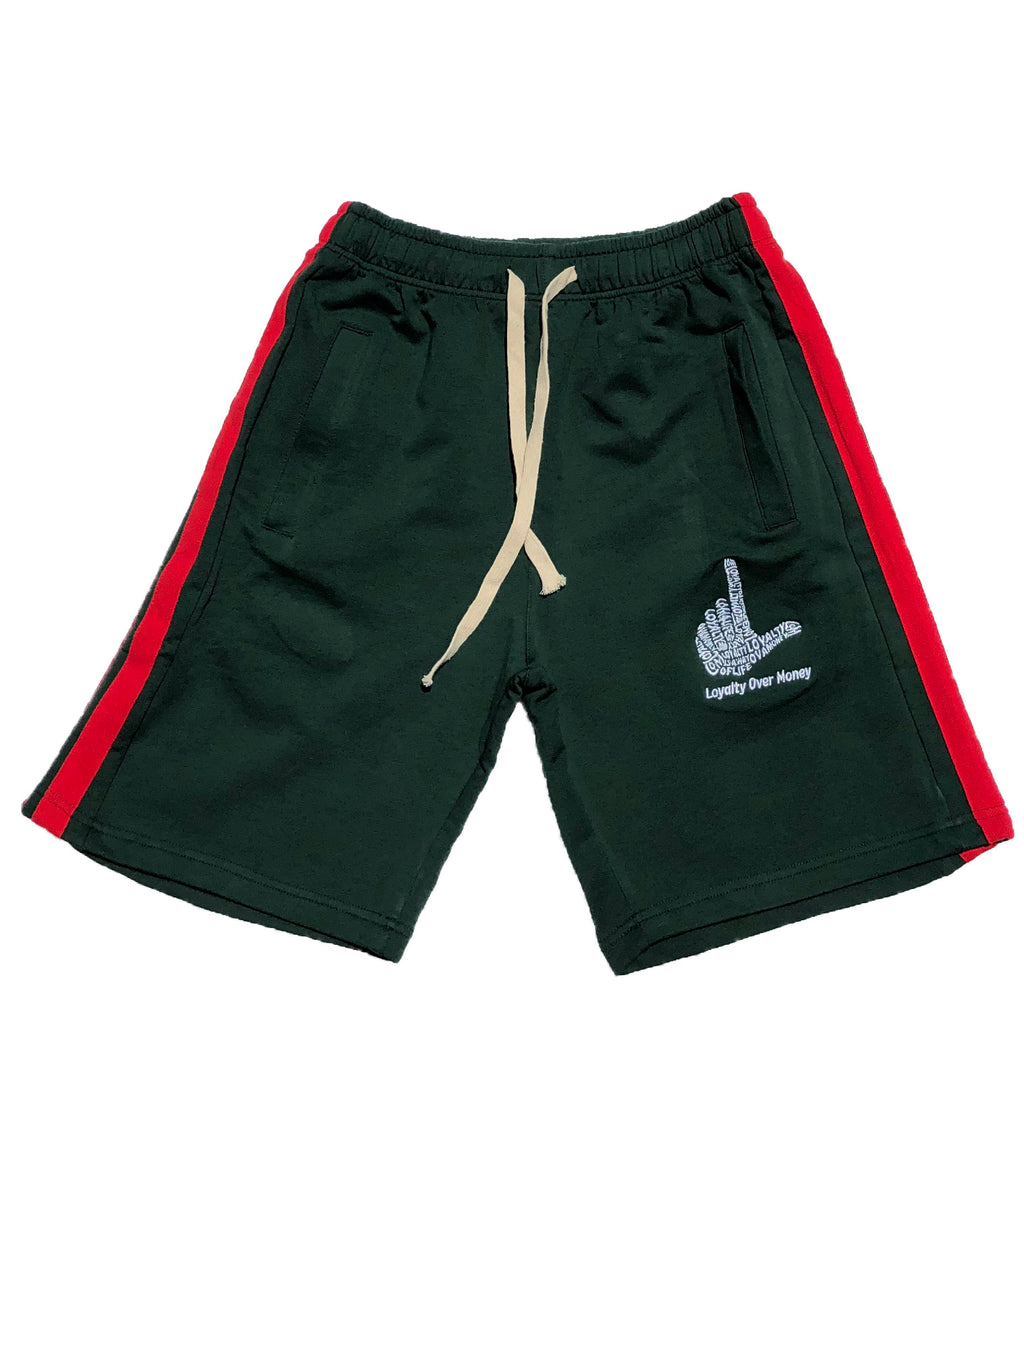 L HAND NATURE BOY SHORTS